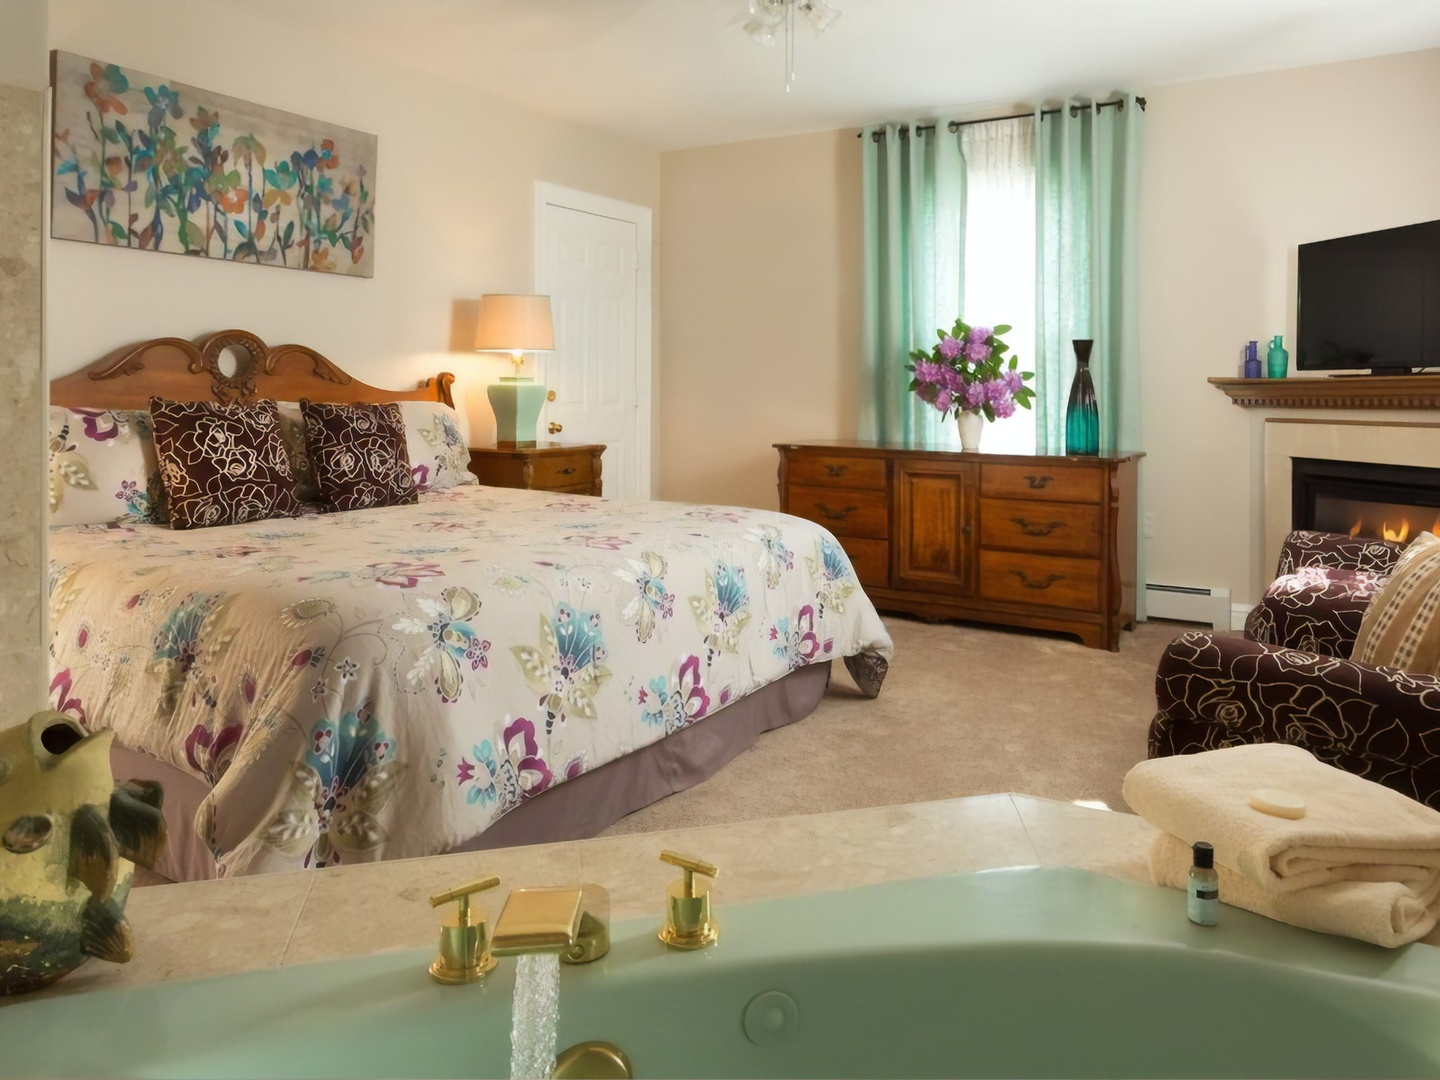 A living room filled with furniture and a mirror at Beech Tree Inn & Cottage.